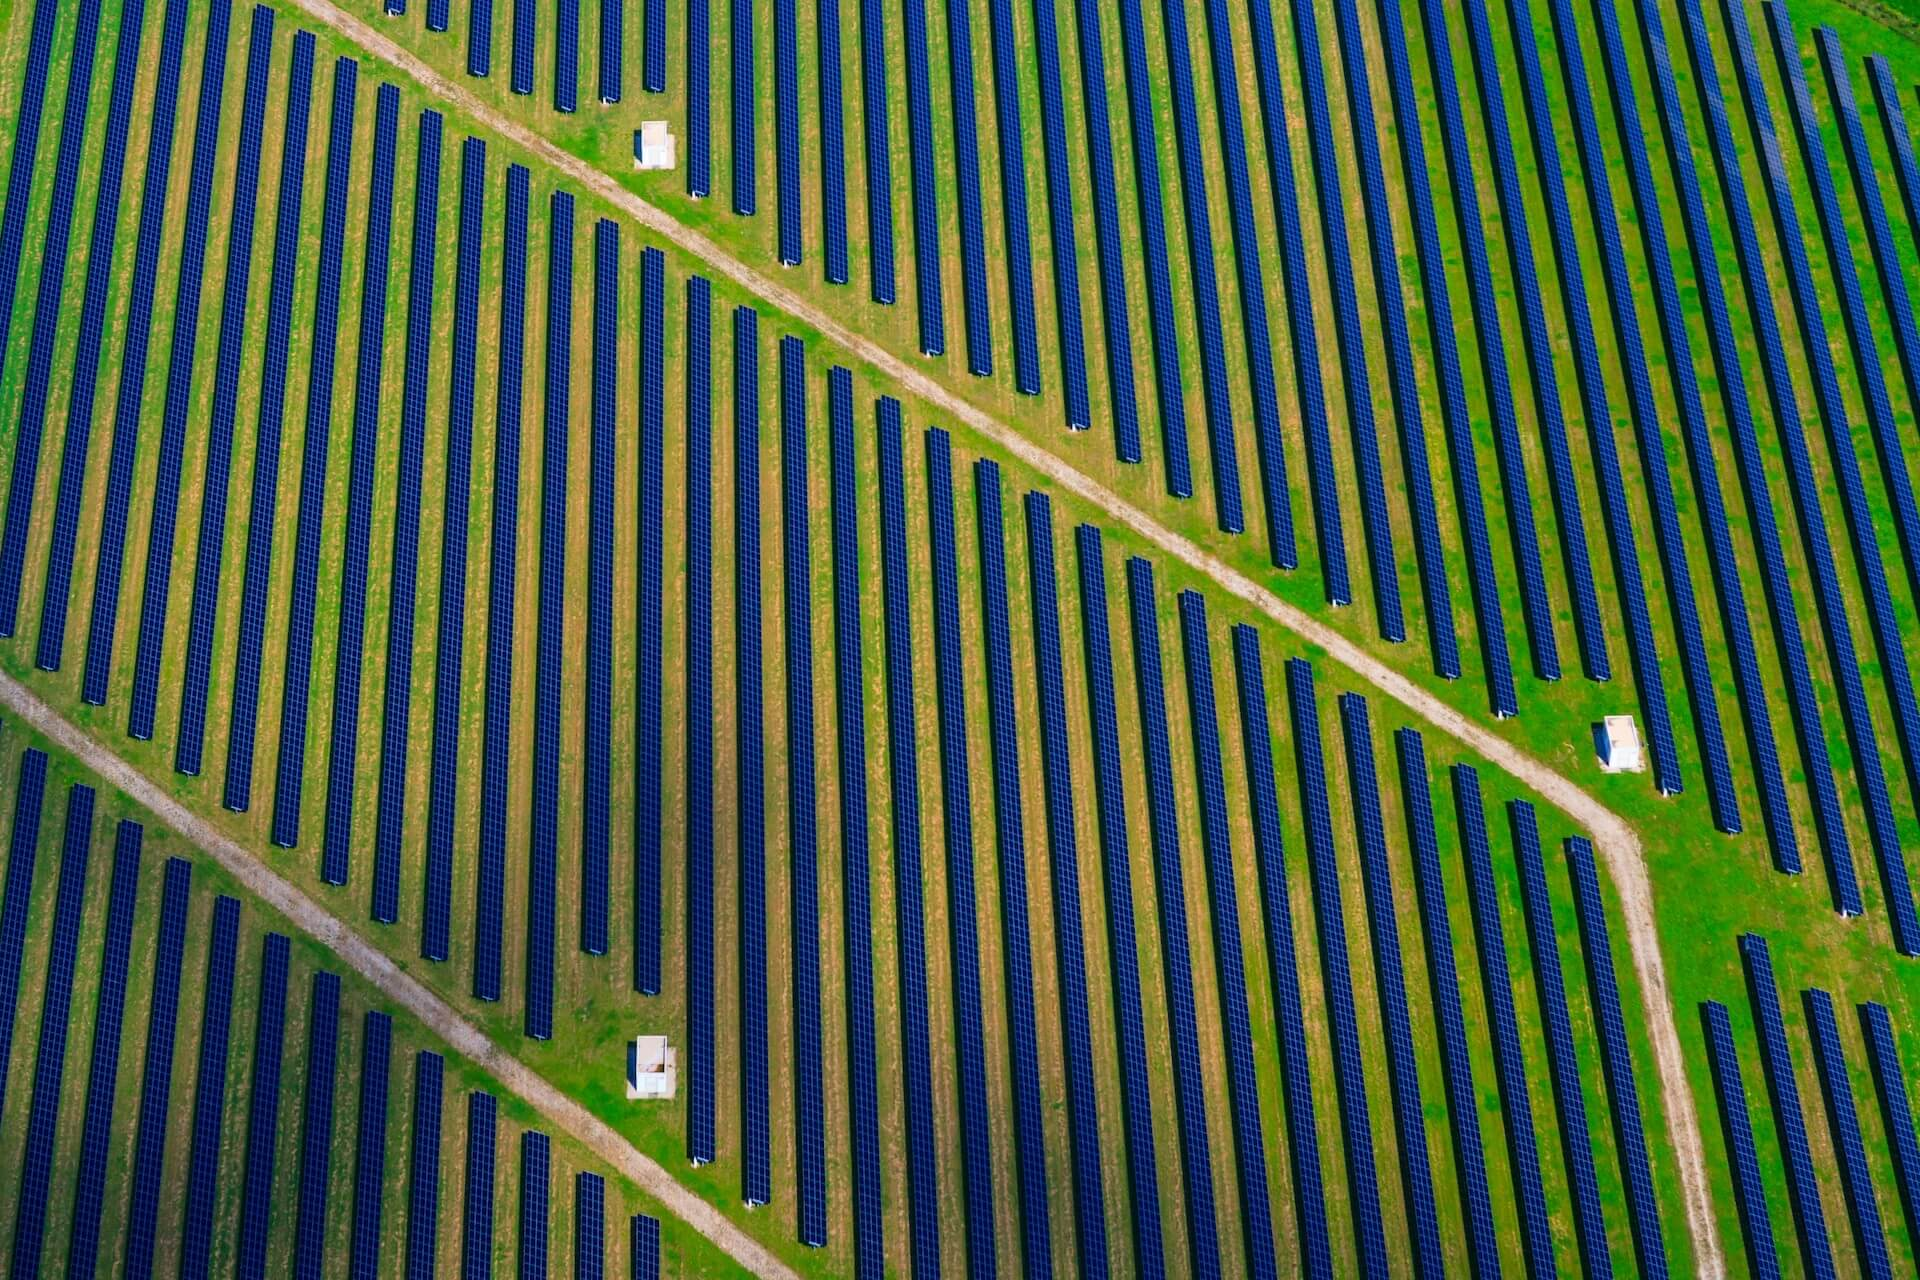 solar-power-plant-bavaria-germany